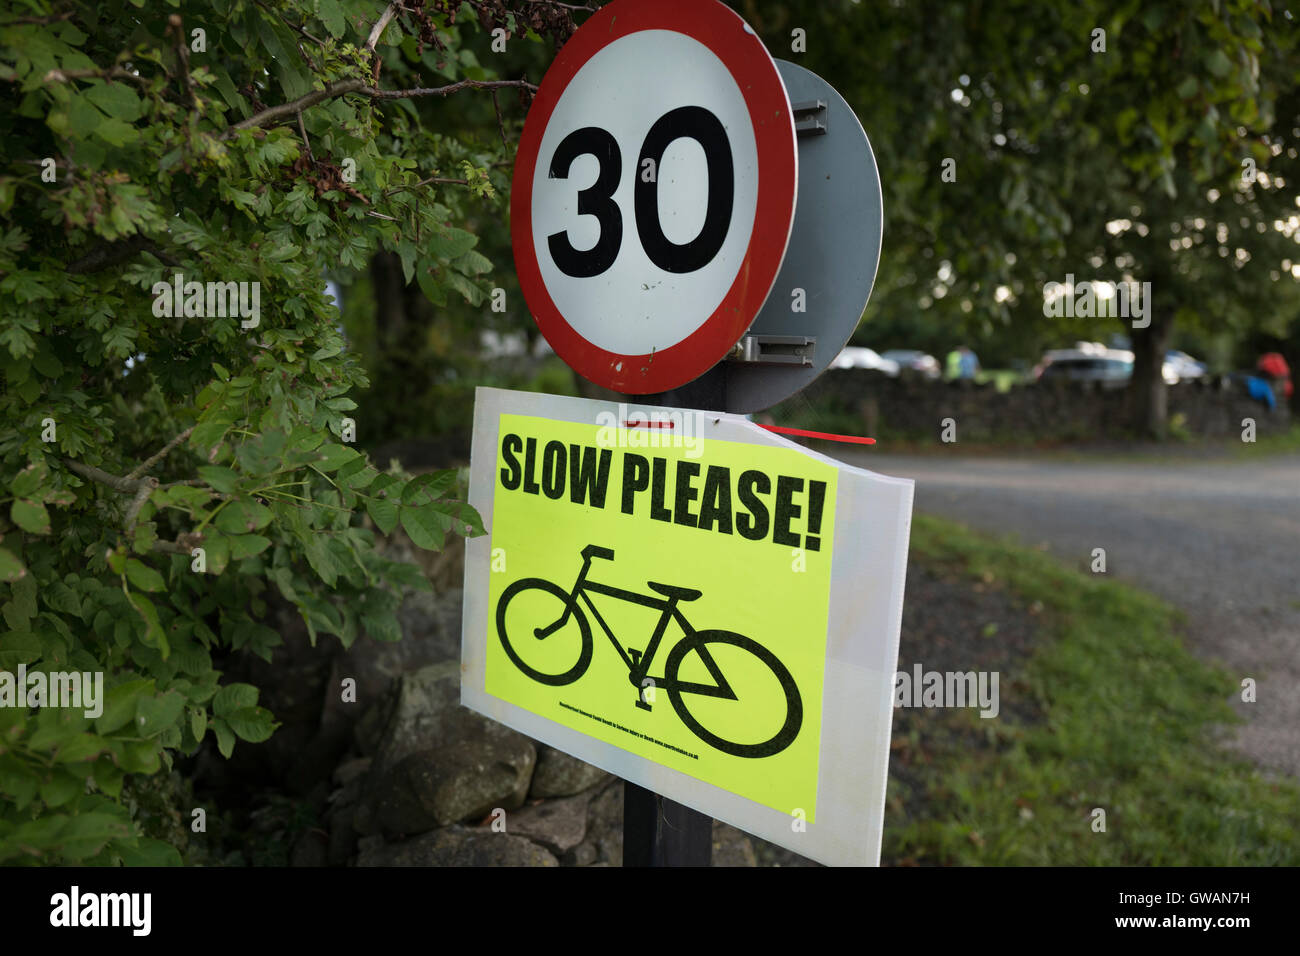 Speed limit sign with cycle event advisory. - Stock Image